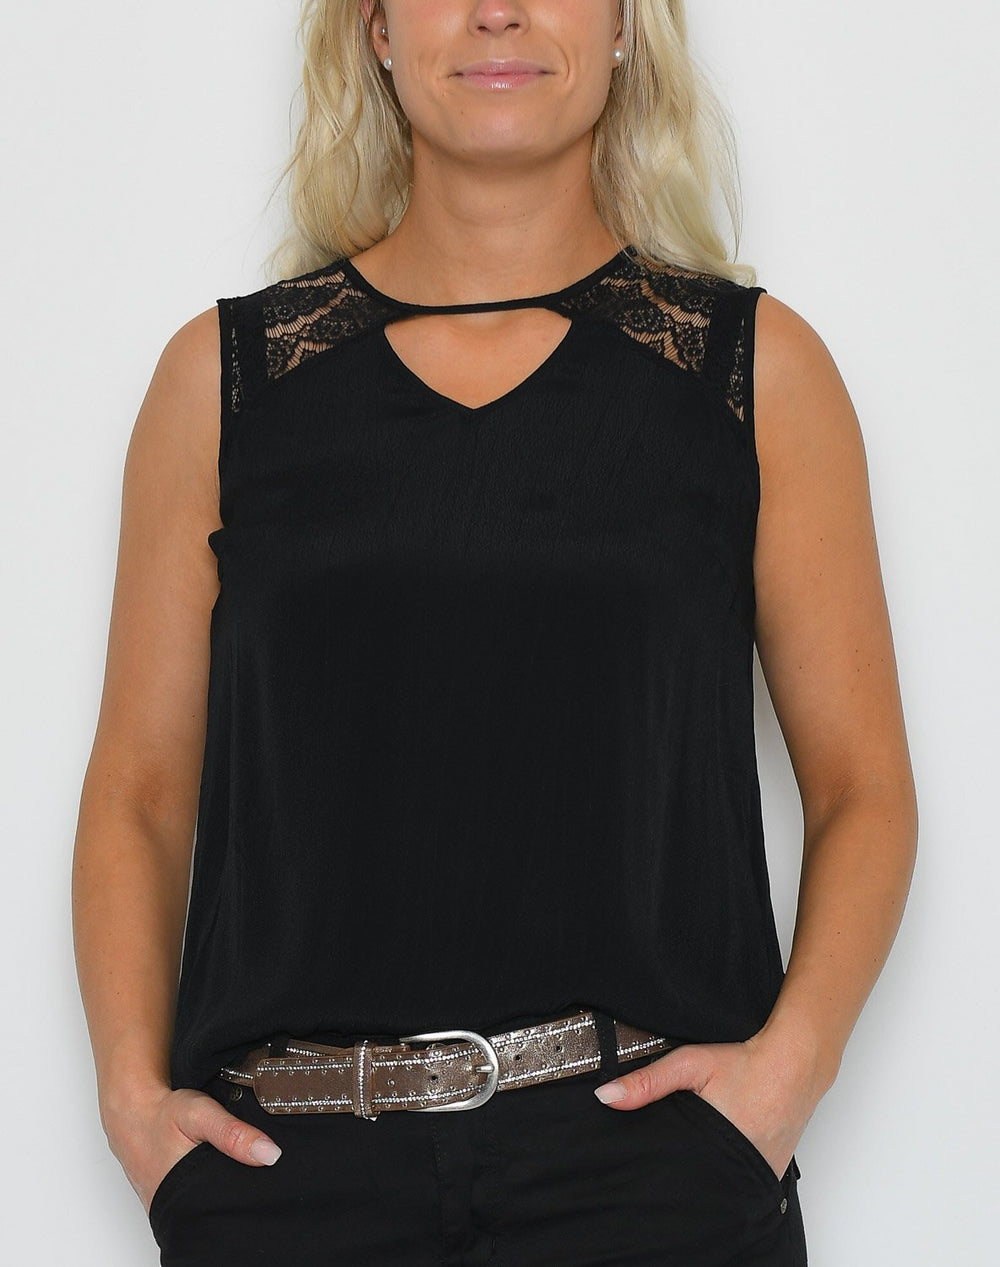 Fransa FRGalace 2 top black - Online-Mode